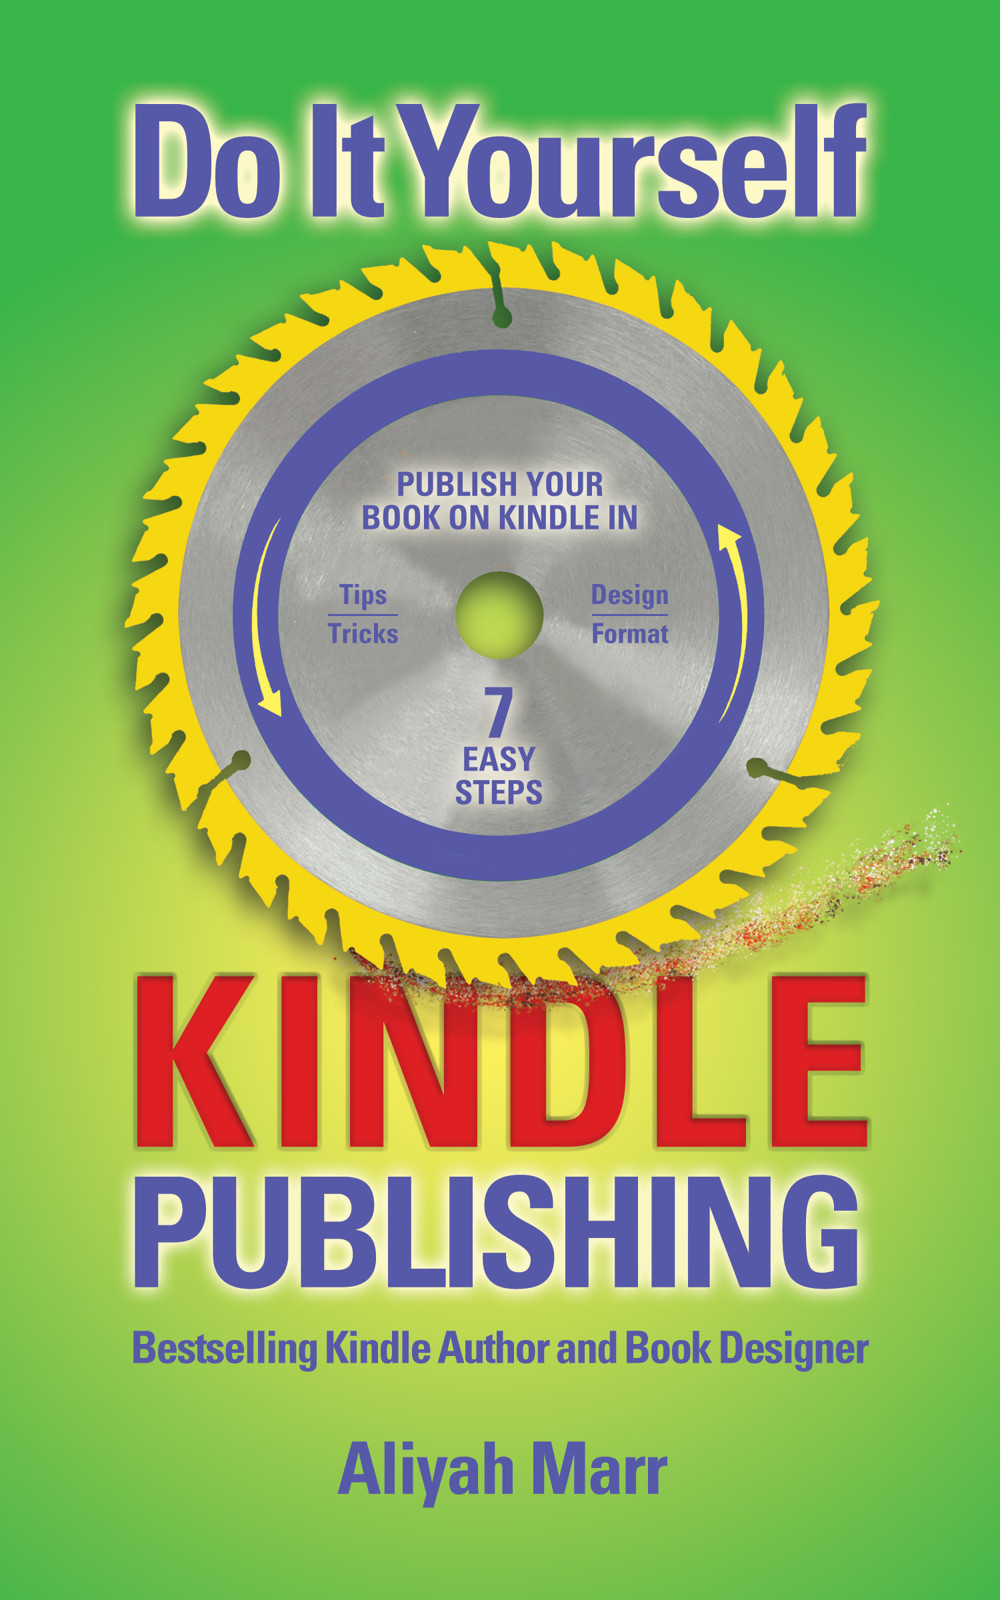 Do it yourself kindle publishing by aliyah marr parallel mindzz solutioingenieria Gallery